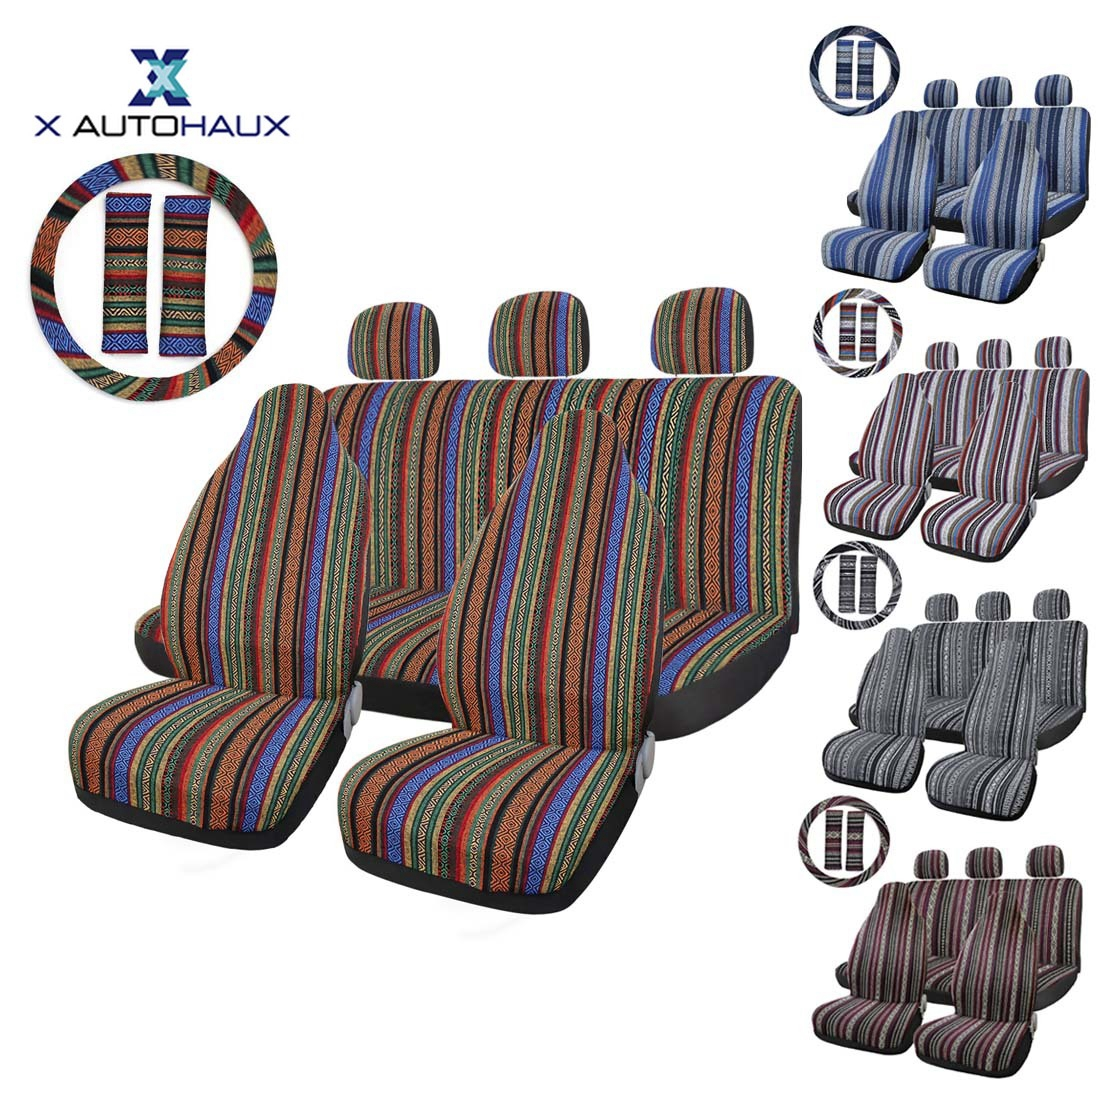 uxcell 10pcs Multi-color Blanket Durable Bucket Seat Cover Protector for Car